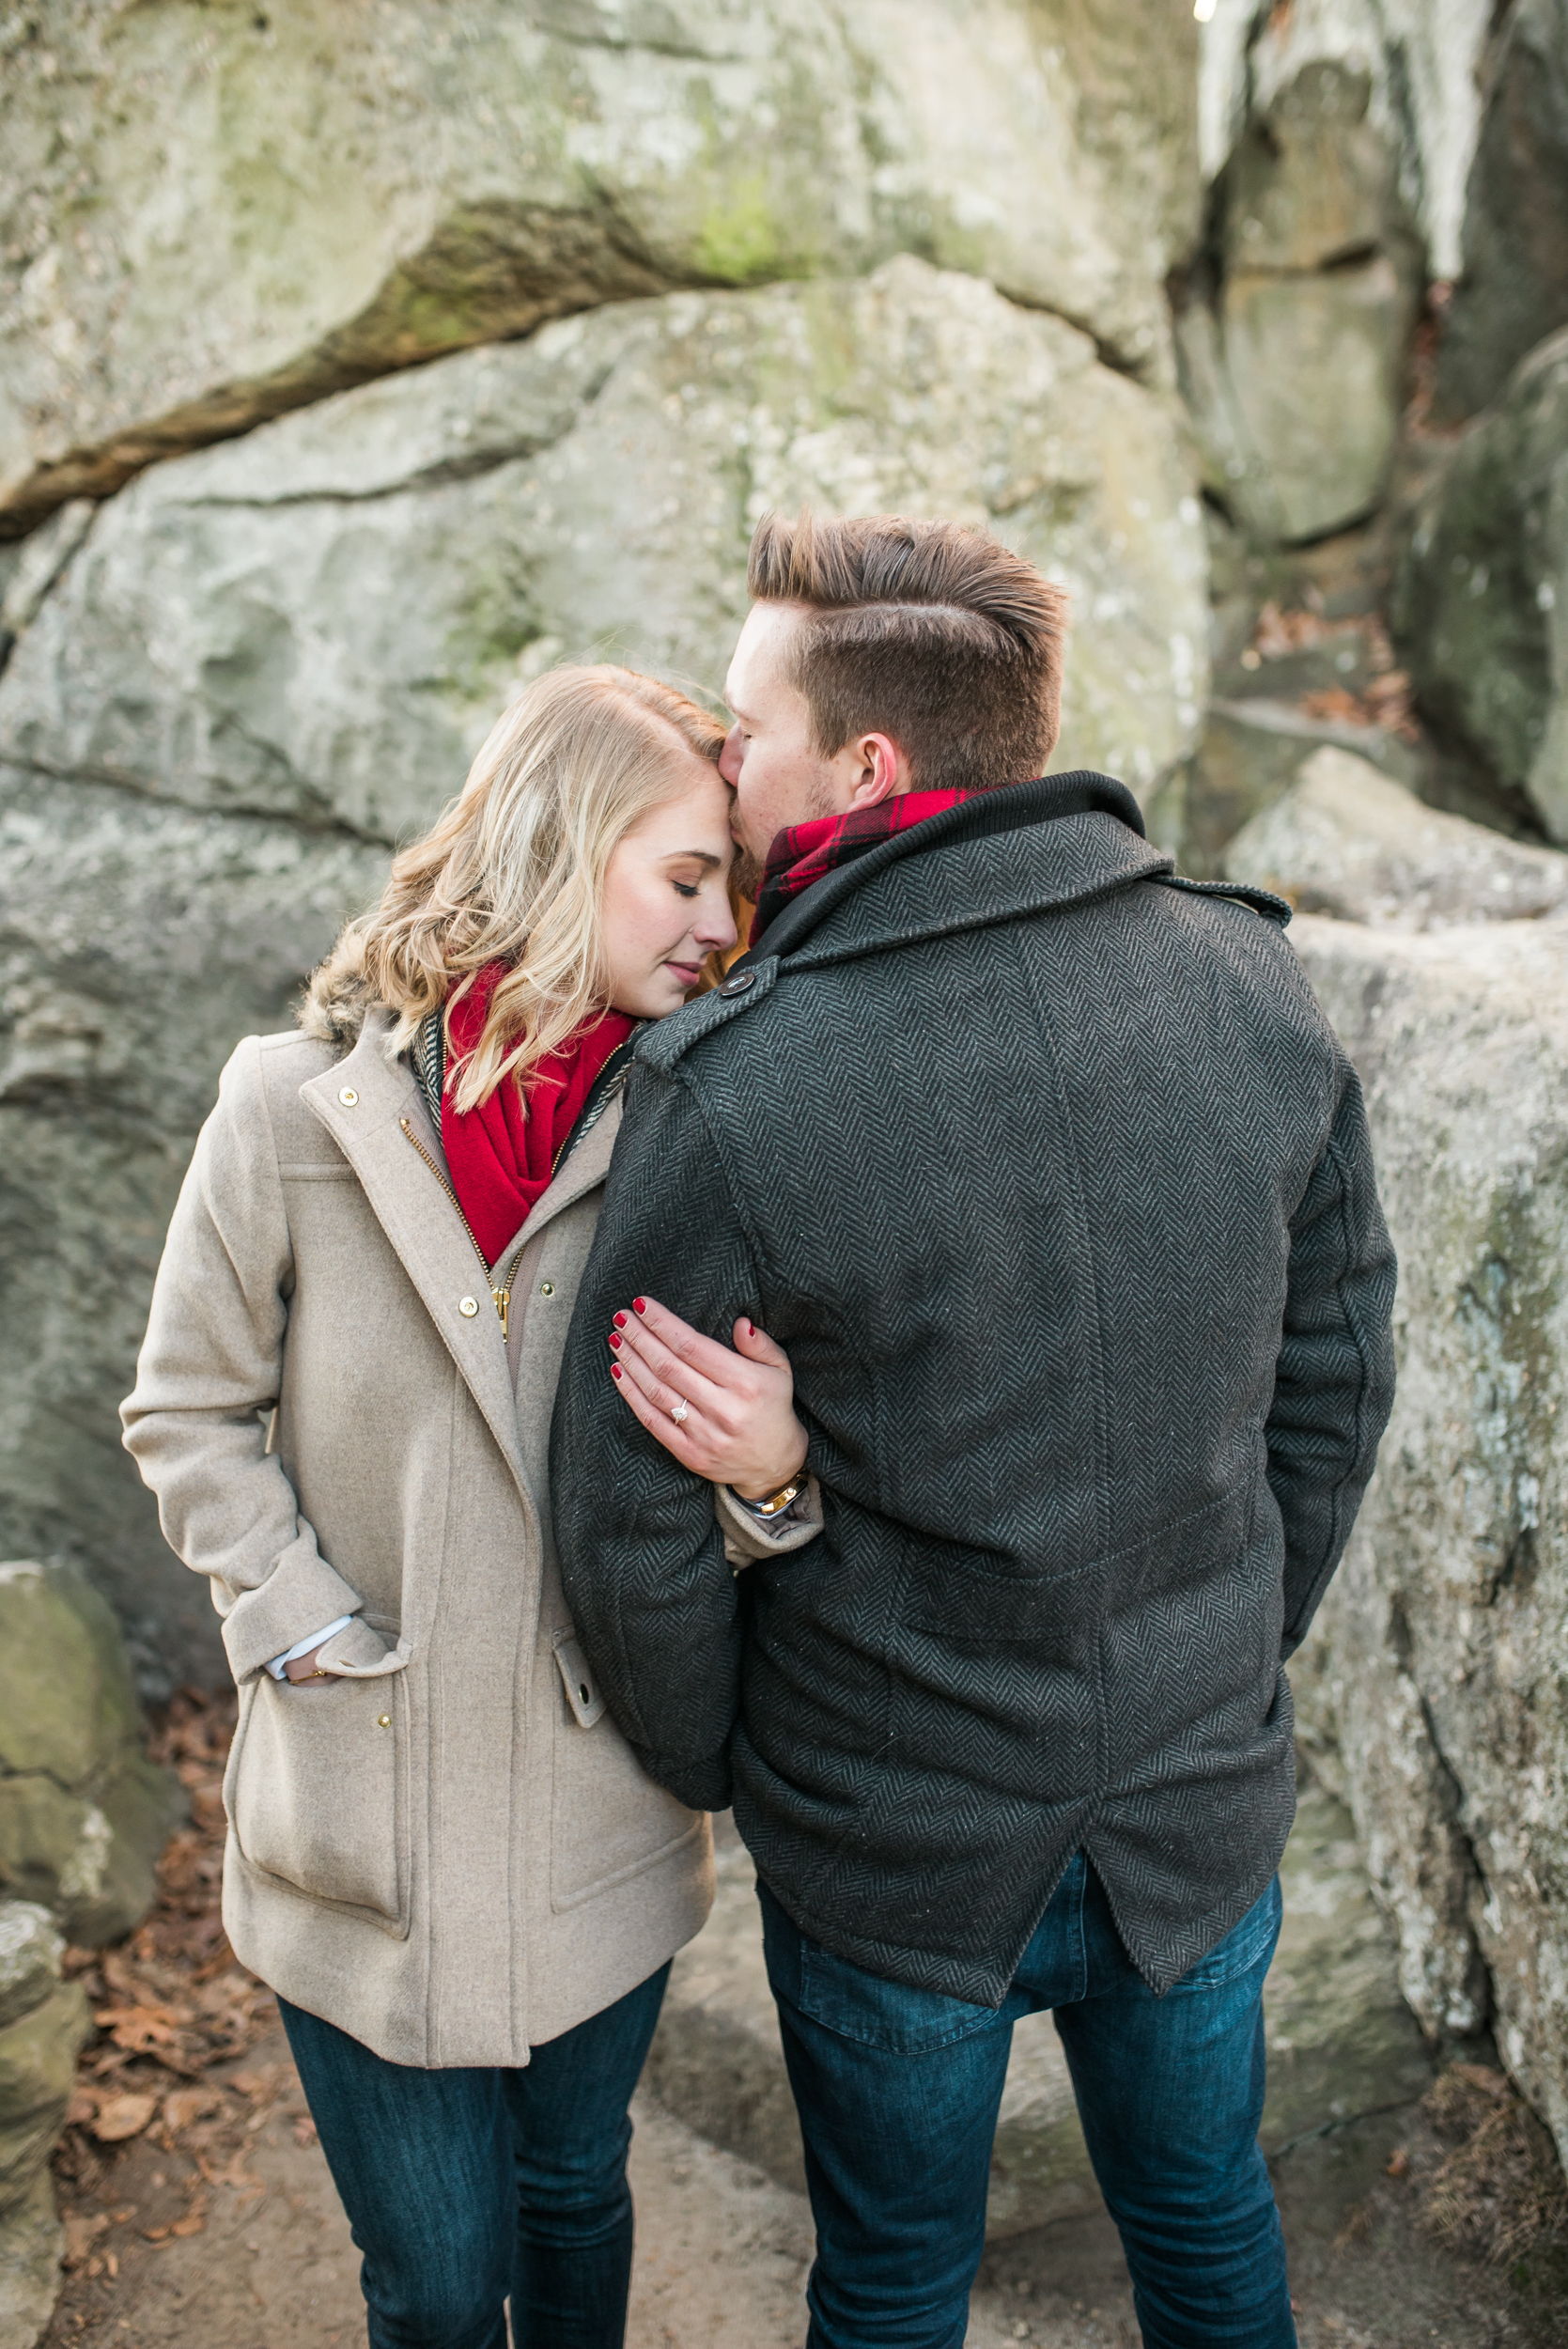 rocks-state-park-engagement-chelsea-blanch-photography-1.jpgrocks-state-park-engagement-chelsea-blanch-photography-13